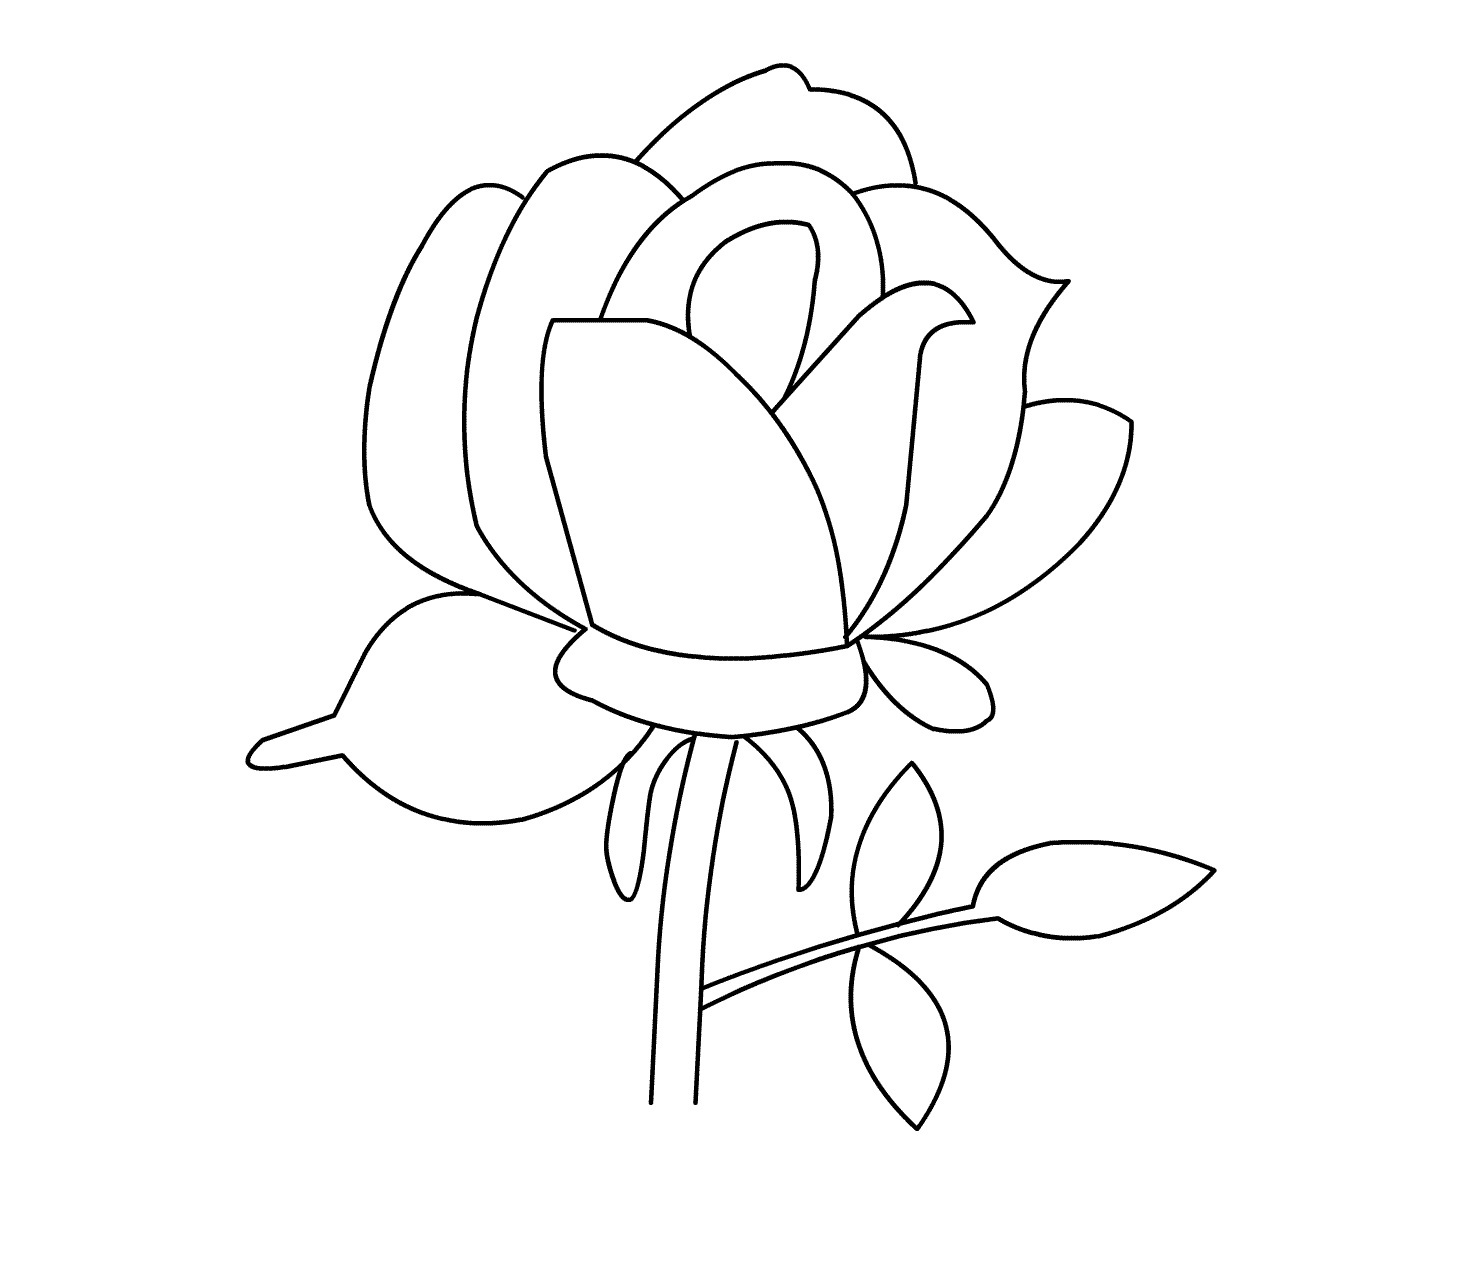 rose coloring pages to print free printable roses coloring pages for kids coloring to rose pages print